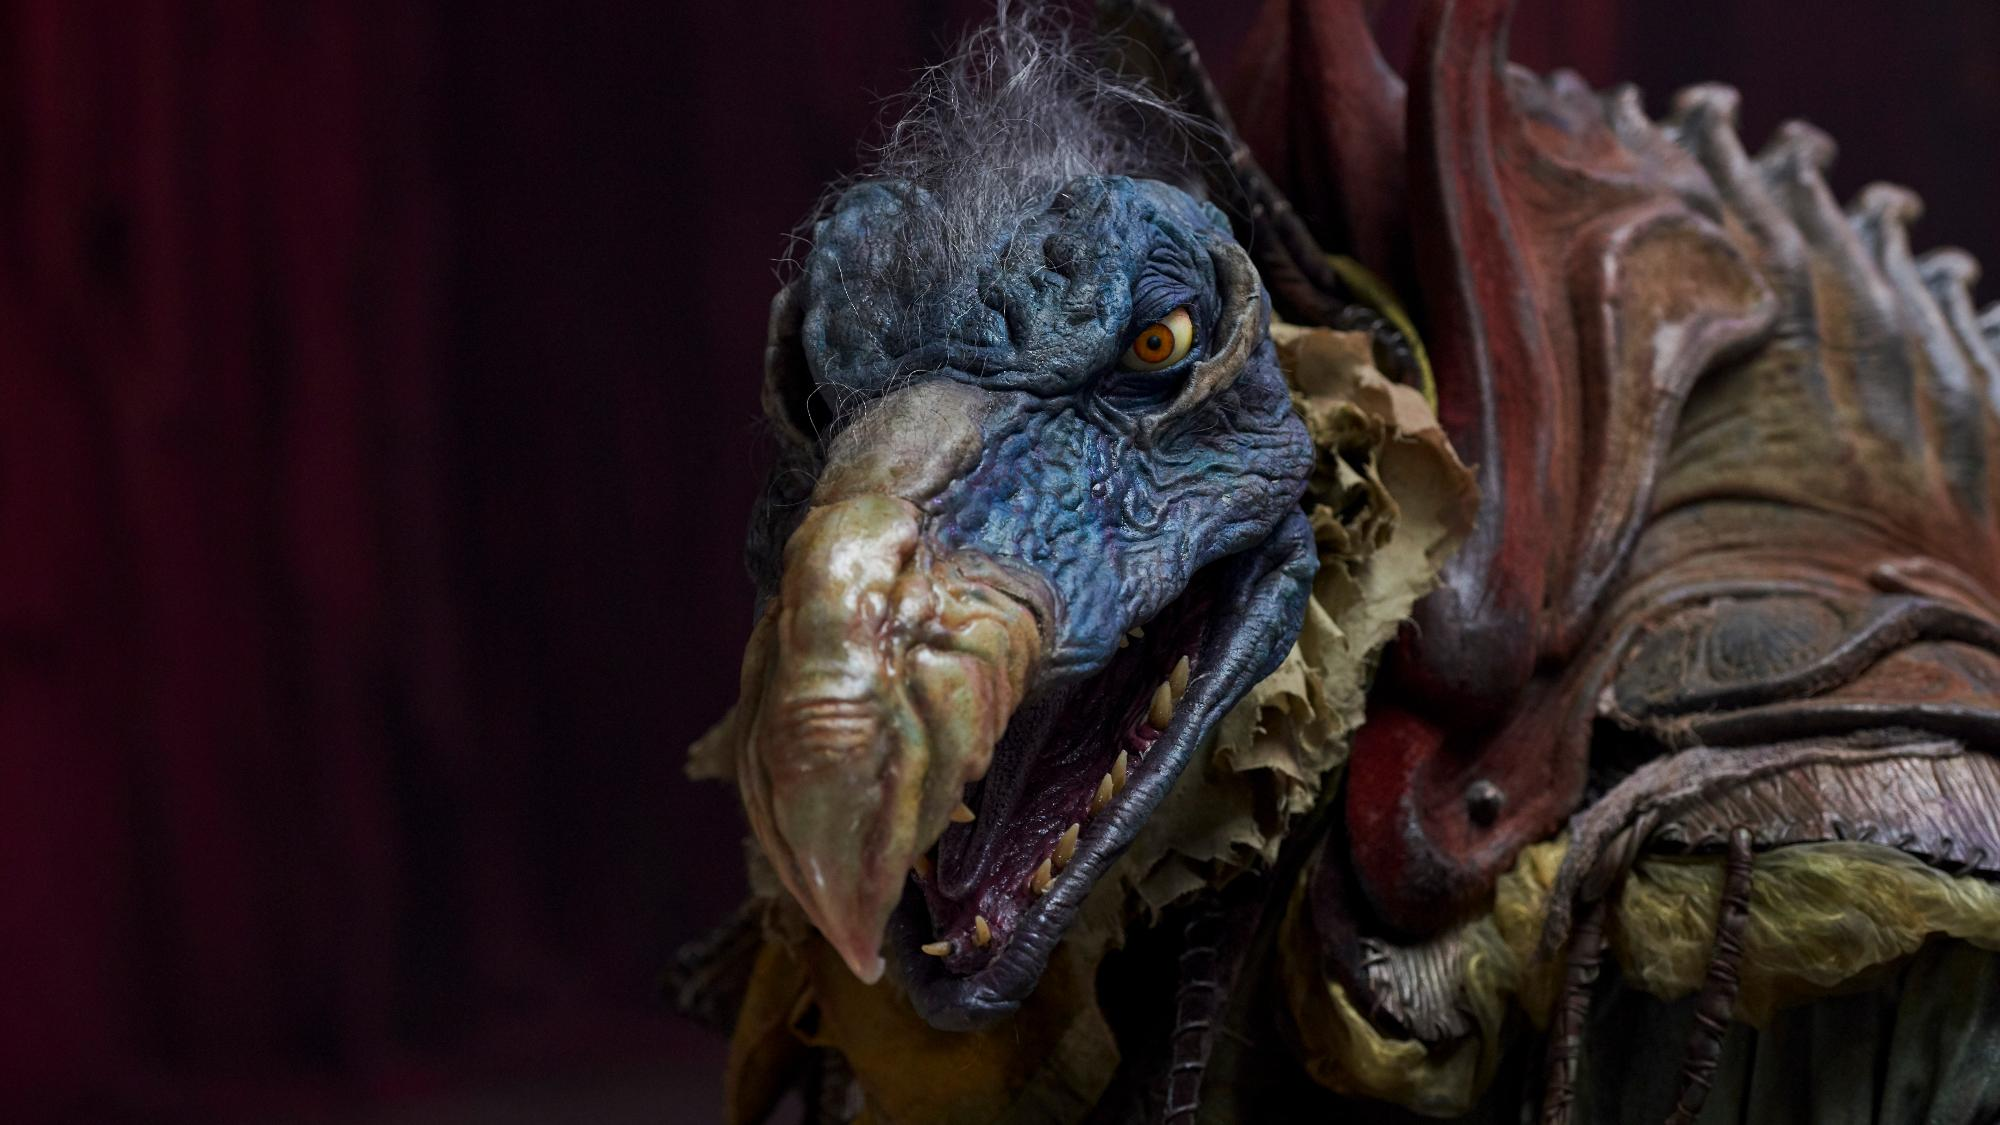 The Skeksis are back to terrify a new generation of kids in Netflix prequel series 'The Dark Crystal: Age of Resistance'. (Credit: Kevin Baker/Netflix)